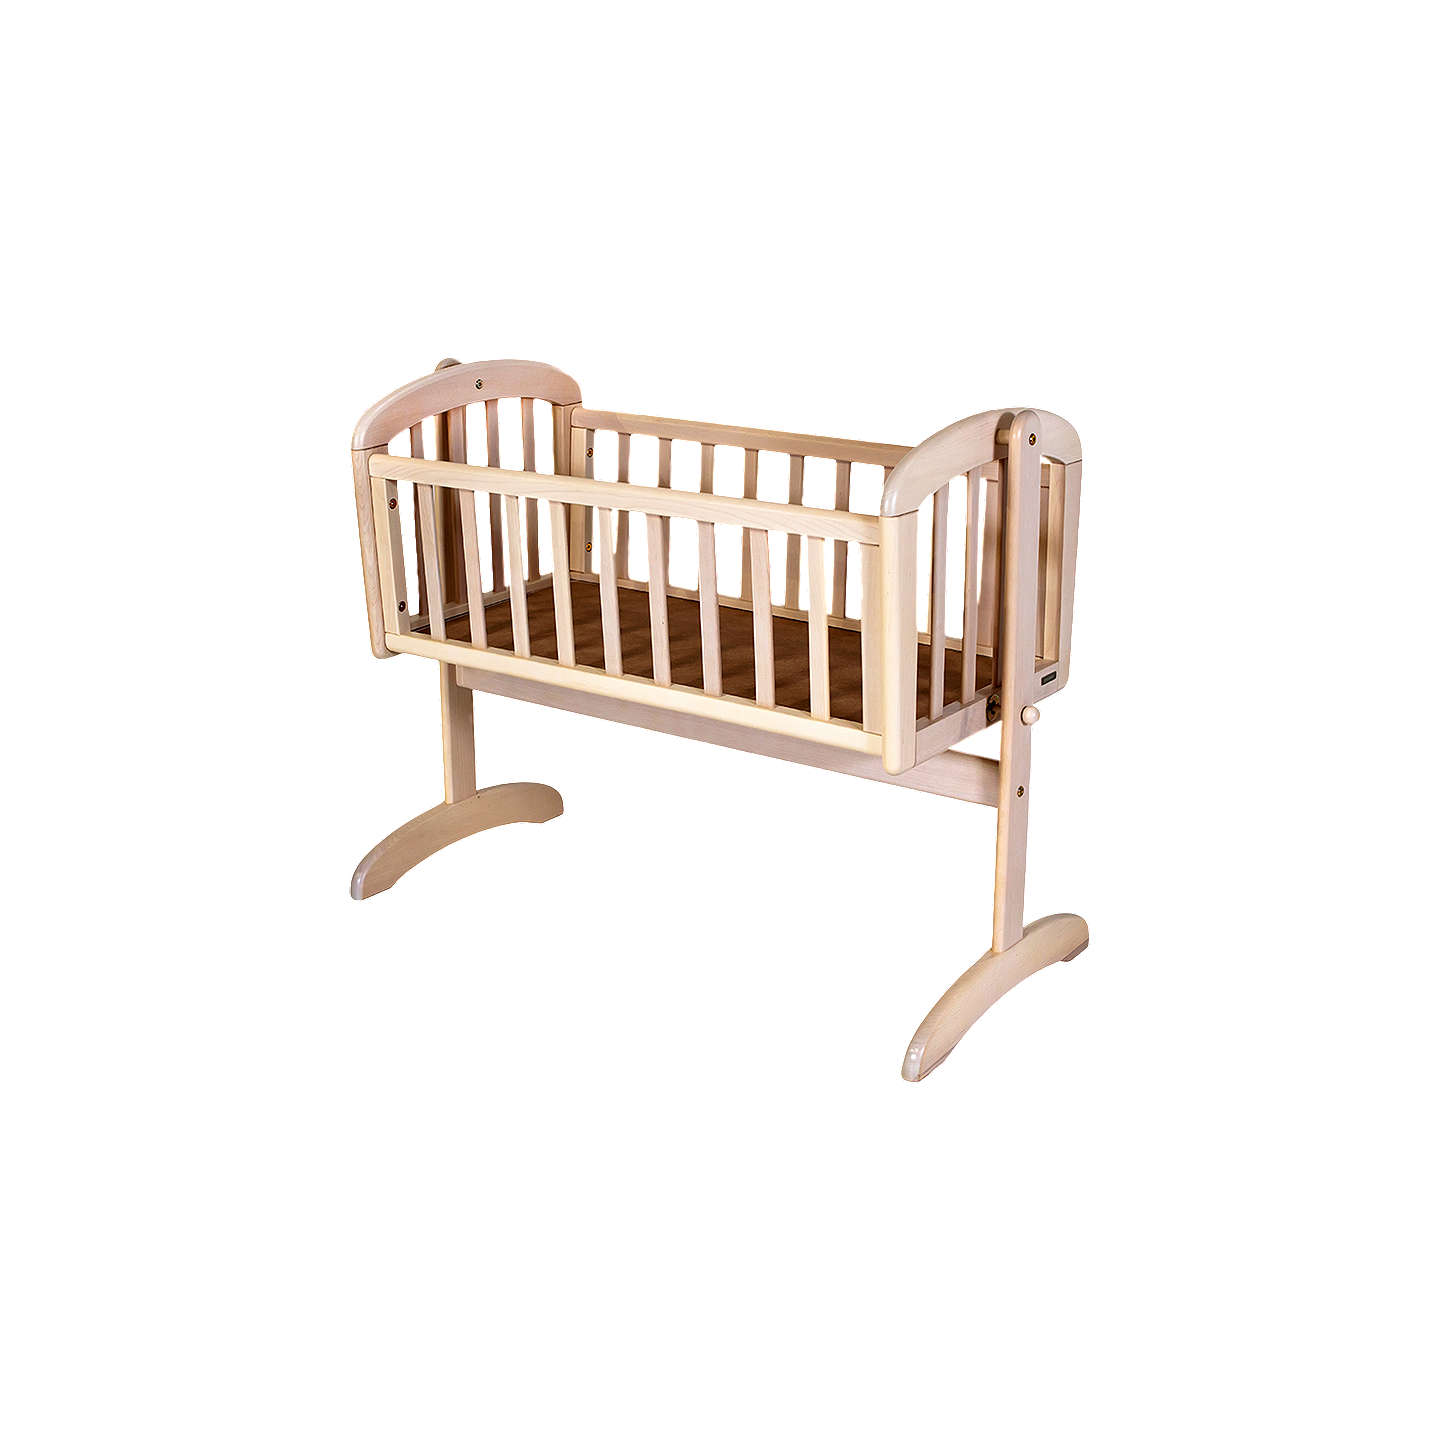 BuyJohn Lewis Anna Swinging Crib, White Wash Online at johnlewis.com